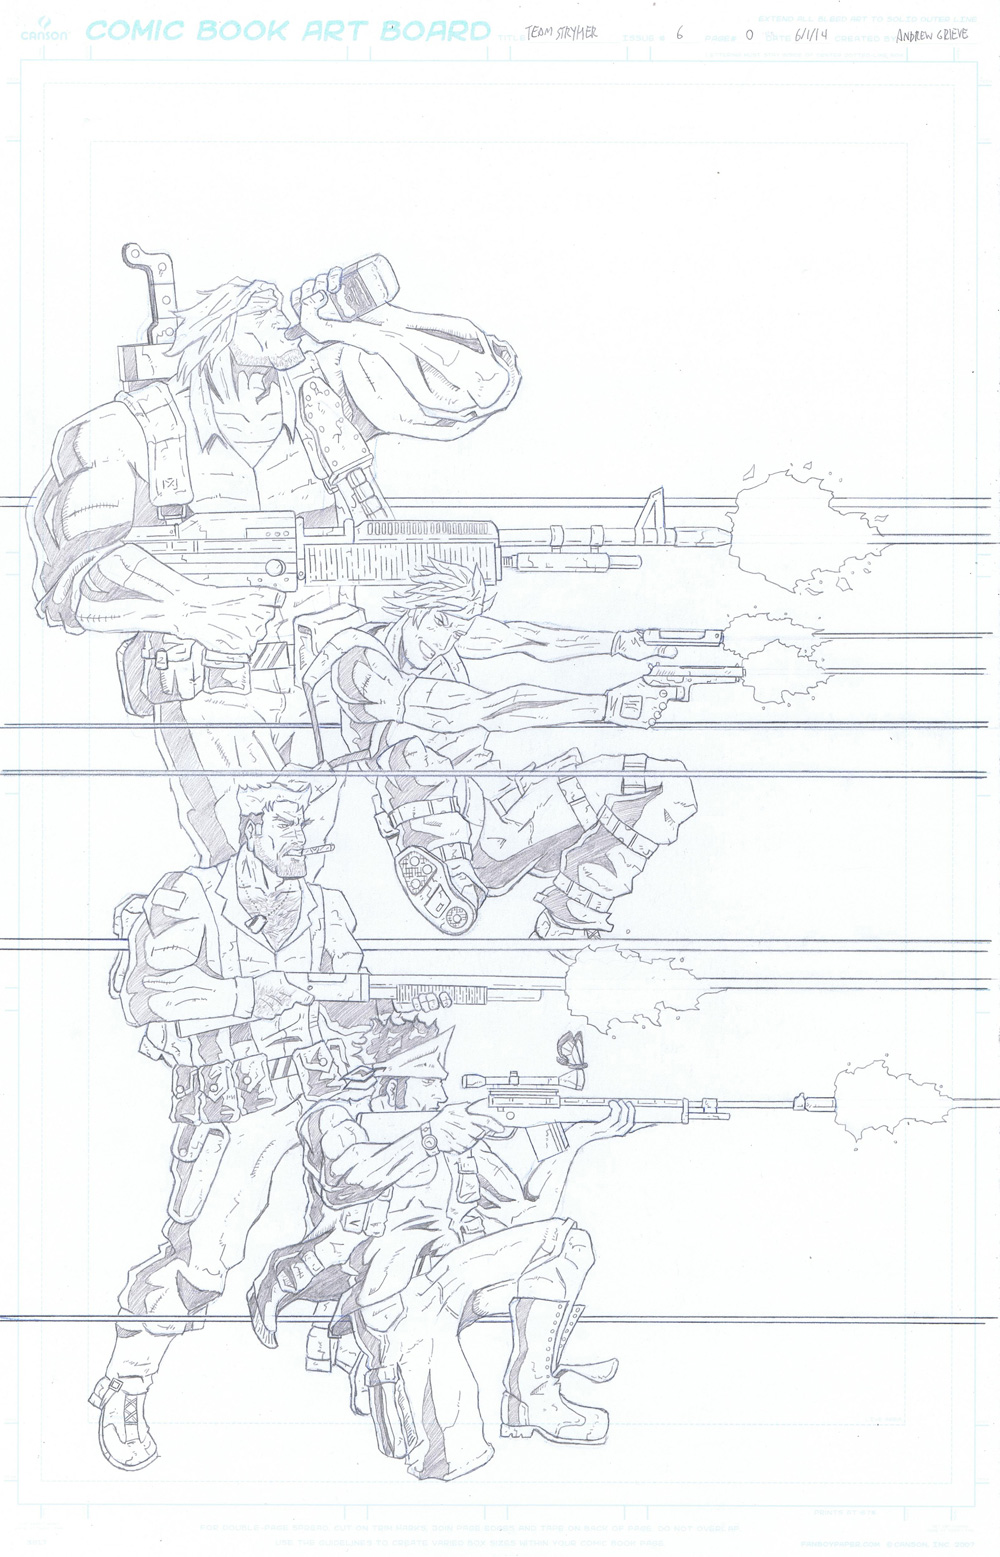 MISSION 006: SPACE COMMIES FROM OUTER SPACE PENCIL